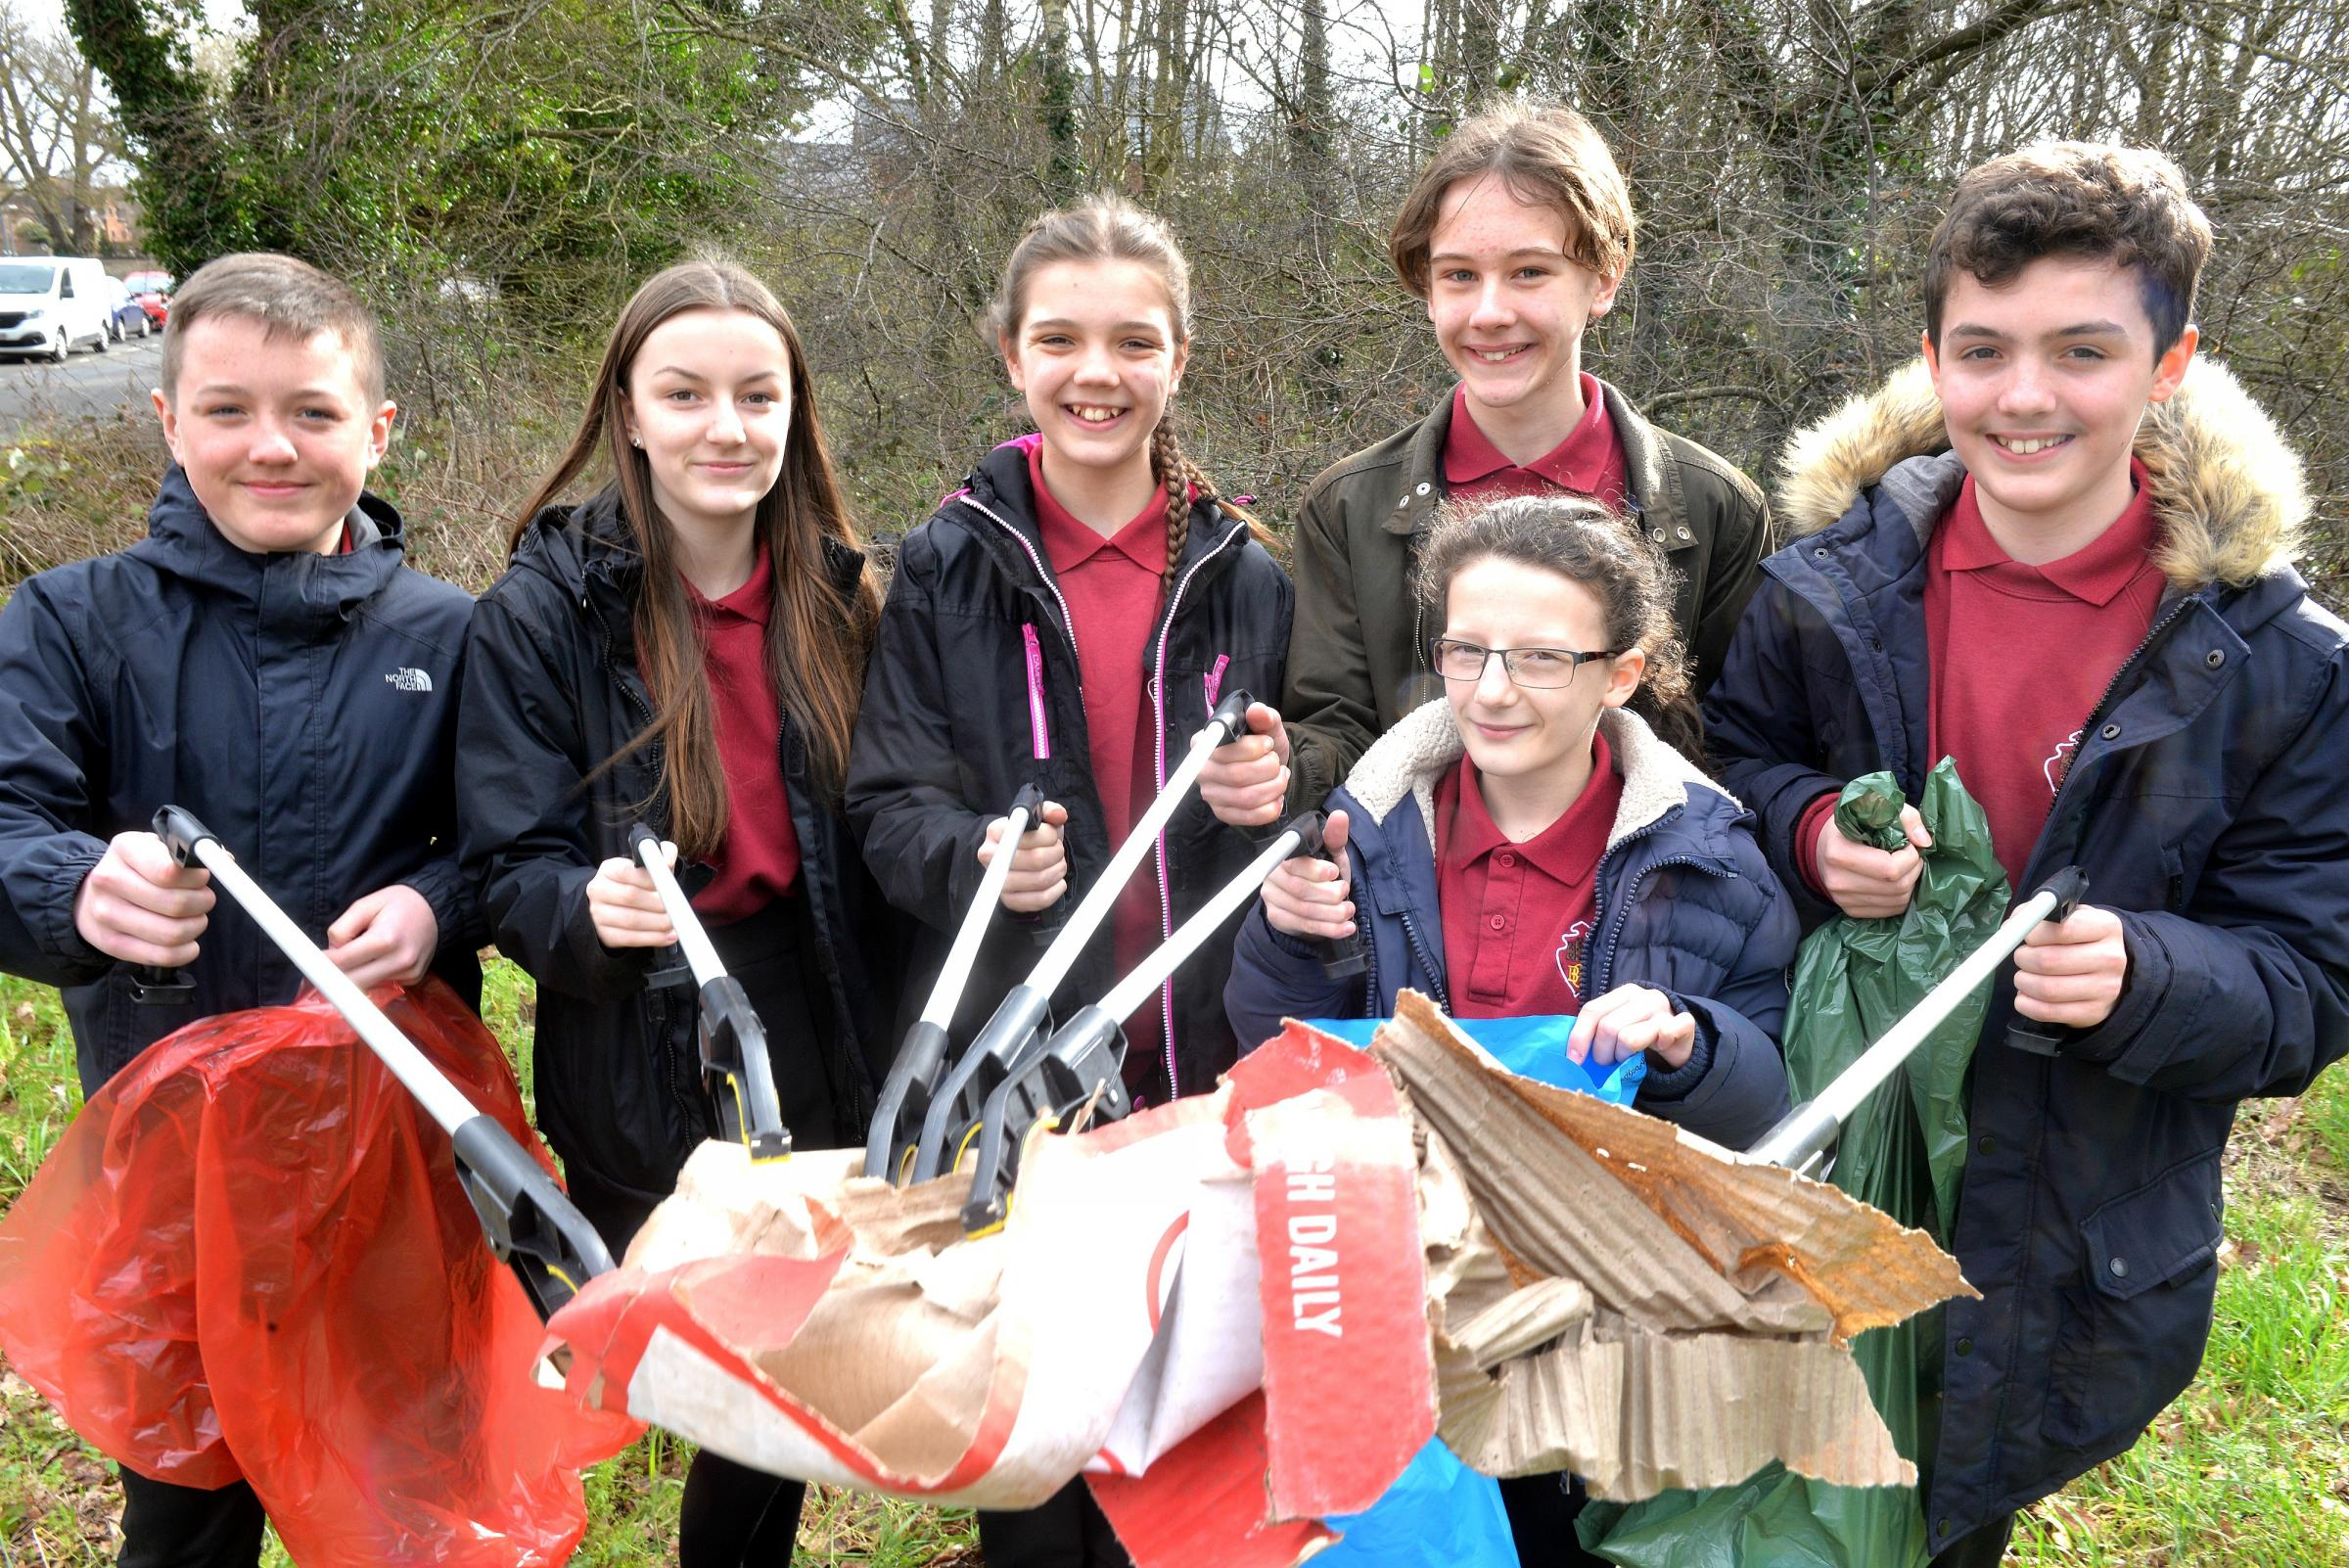 Brimsham Green School pupils have been litter picking as part of the work in the community